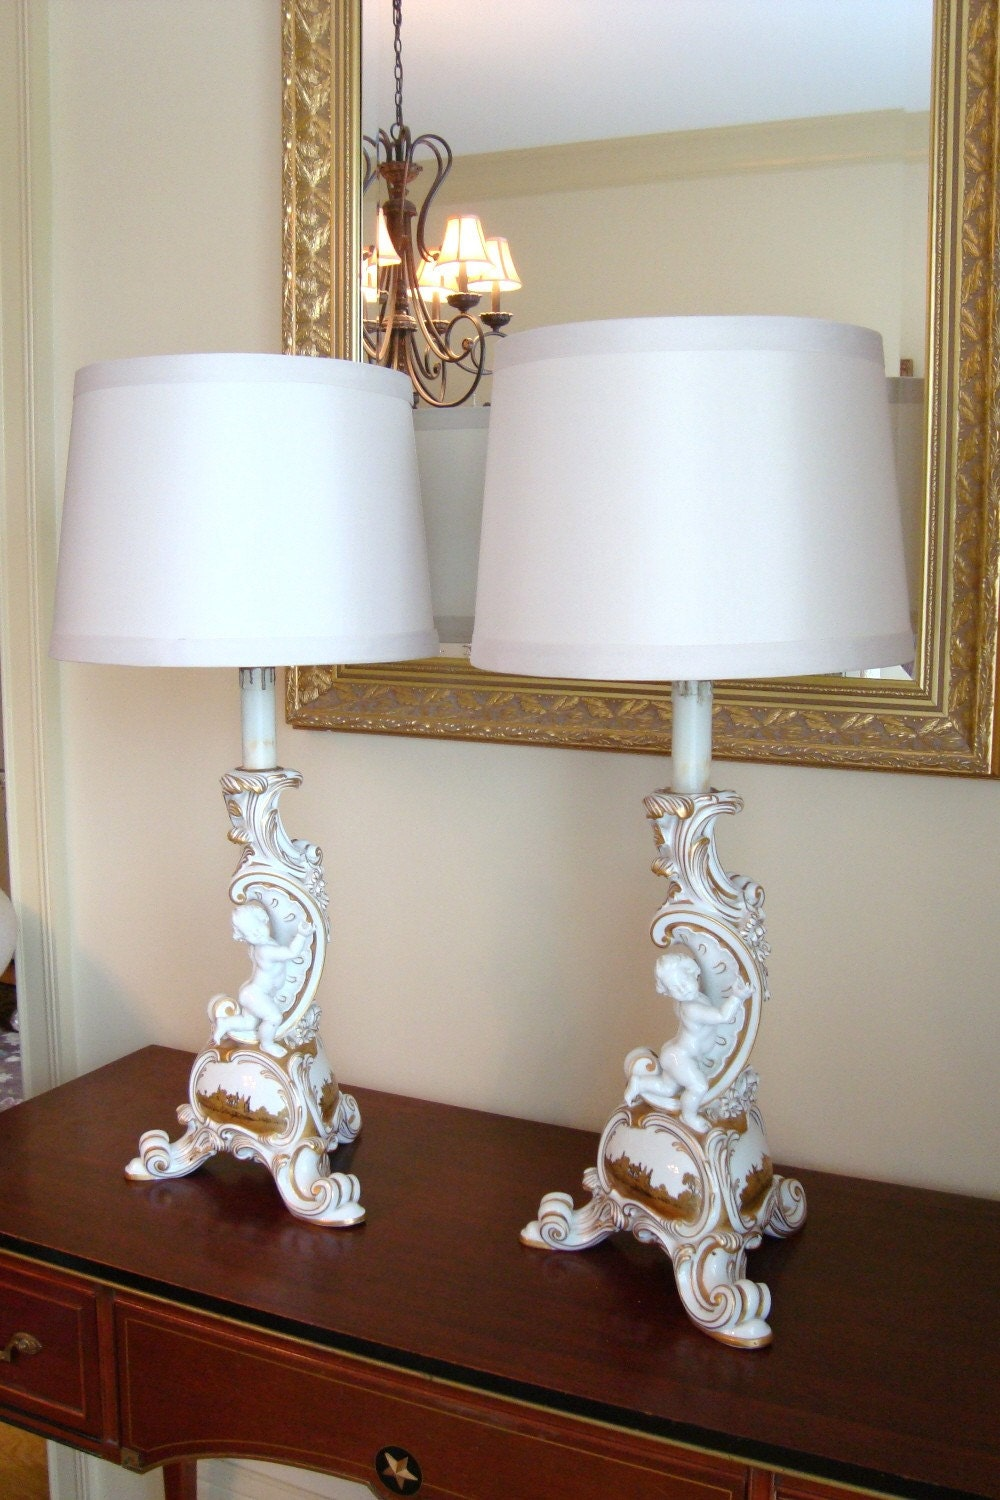 Antique German Cherub Lamps Porcelain Rosenthal Selb Bavarian